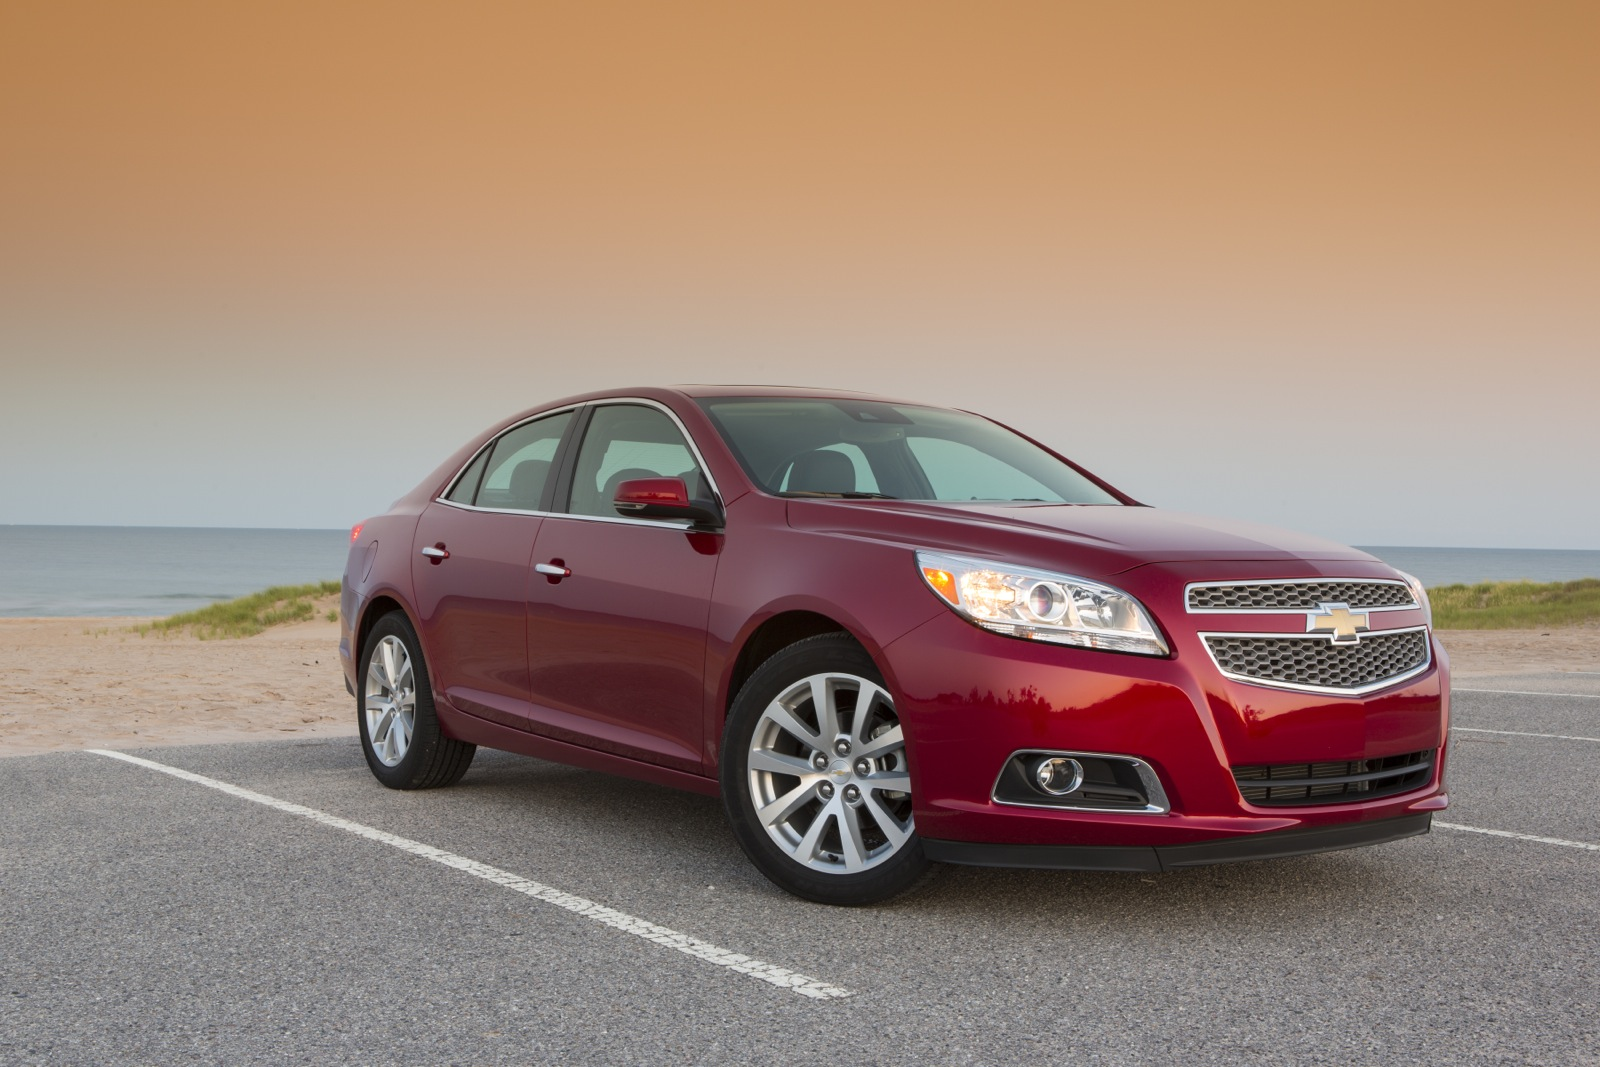 Chevy Malibu Mpg >> 2013 Chevrolet Malibu Gas Mileage Choices For Mid Size Sedan